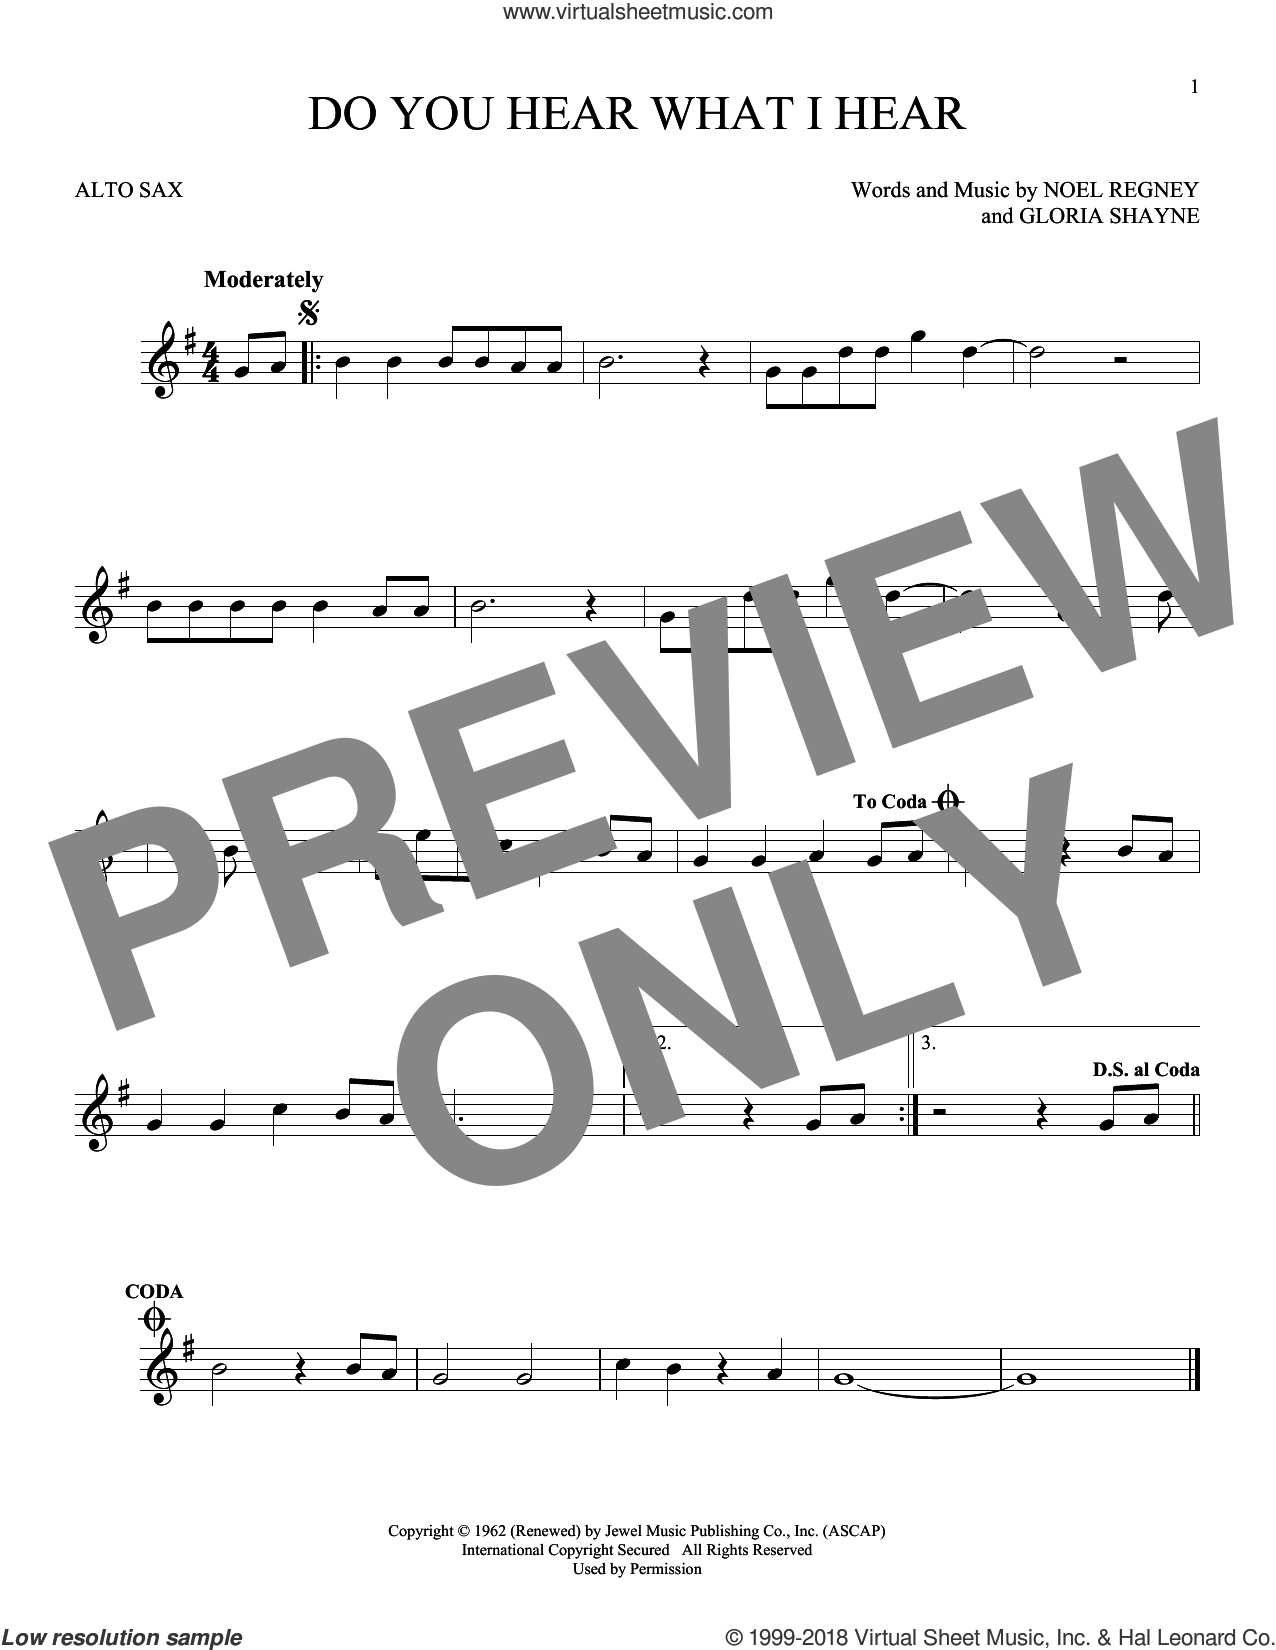 Do You Hear What I Hear sheet music for alto saxophone solo by Gloria Shayne, Carole King, Carrie Underwood, Susan Boyle feat. Amber Stassi, Noel Regney and Noel Regney & Gloria Shayne, intermediate skill level